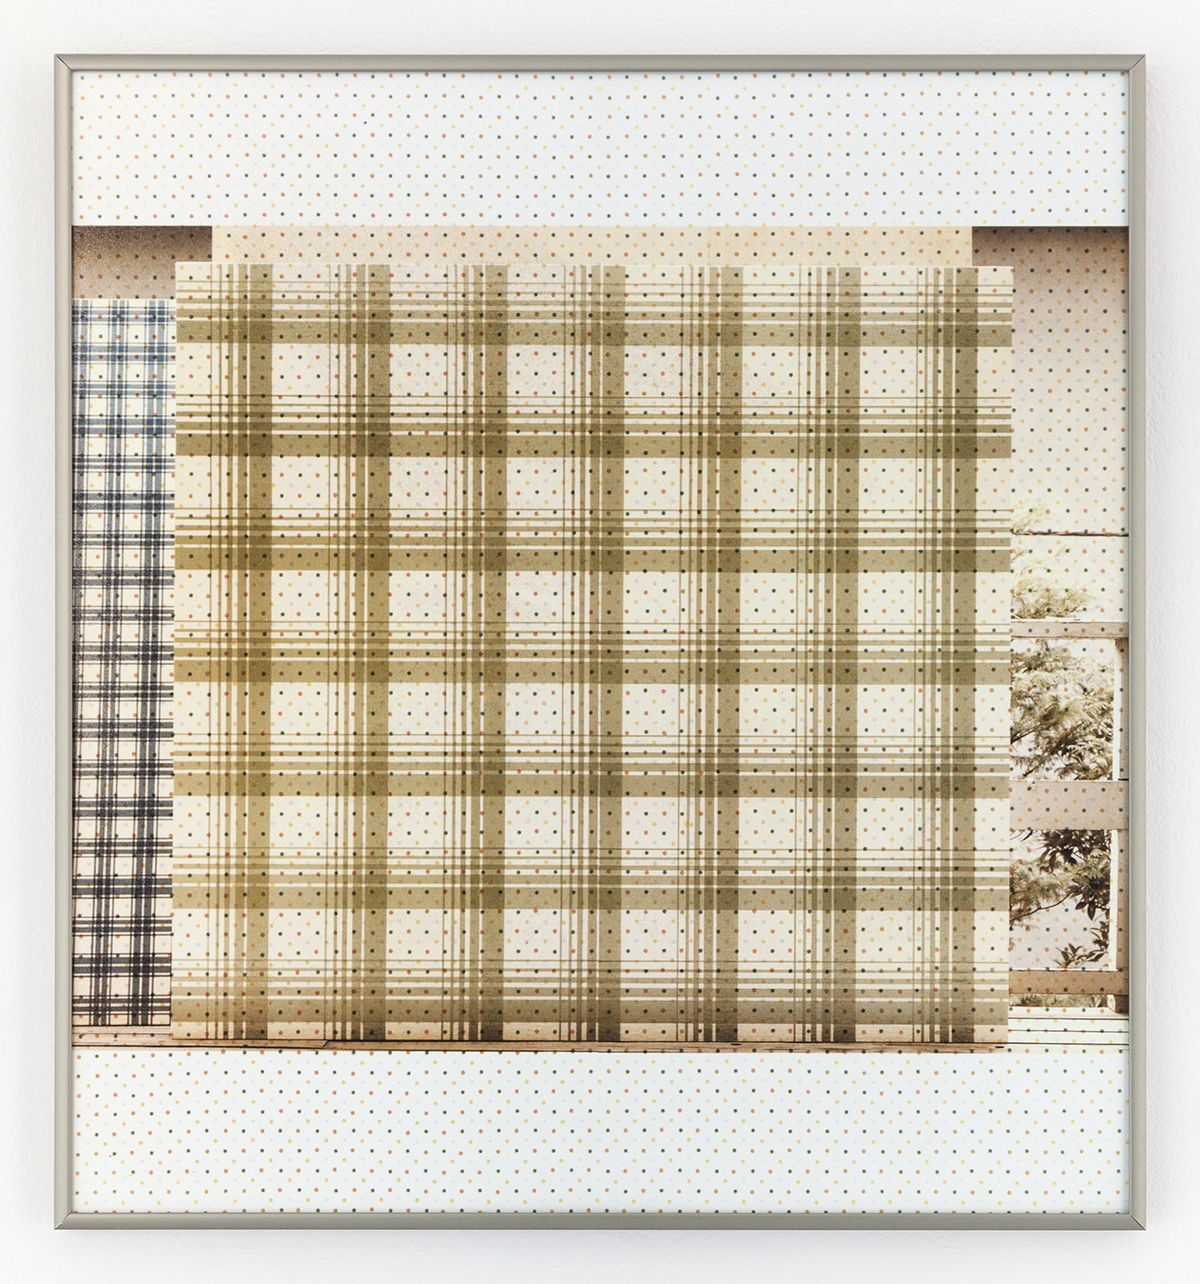 Daan van Golden, Artist's Studio/Composition with Colored Dots, 2012